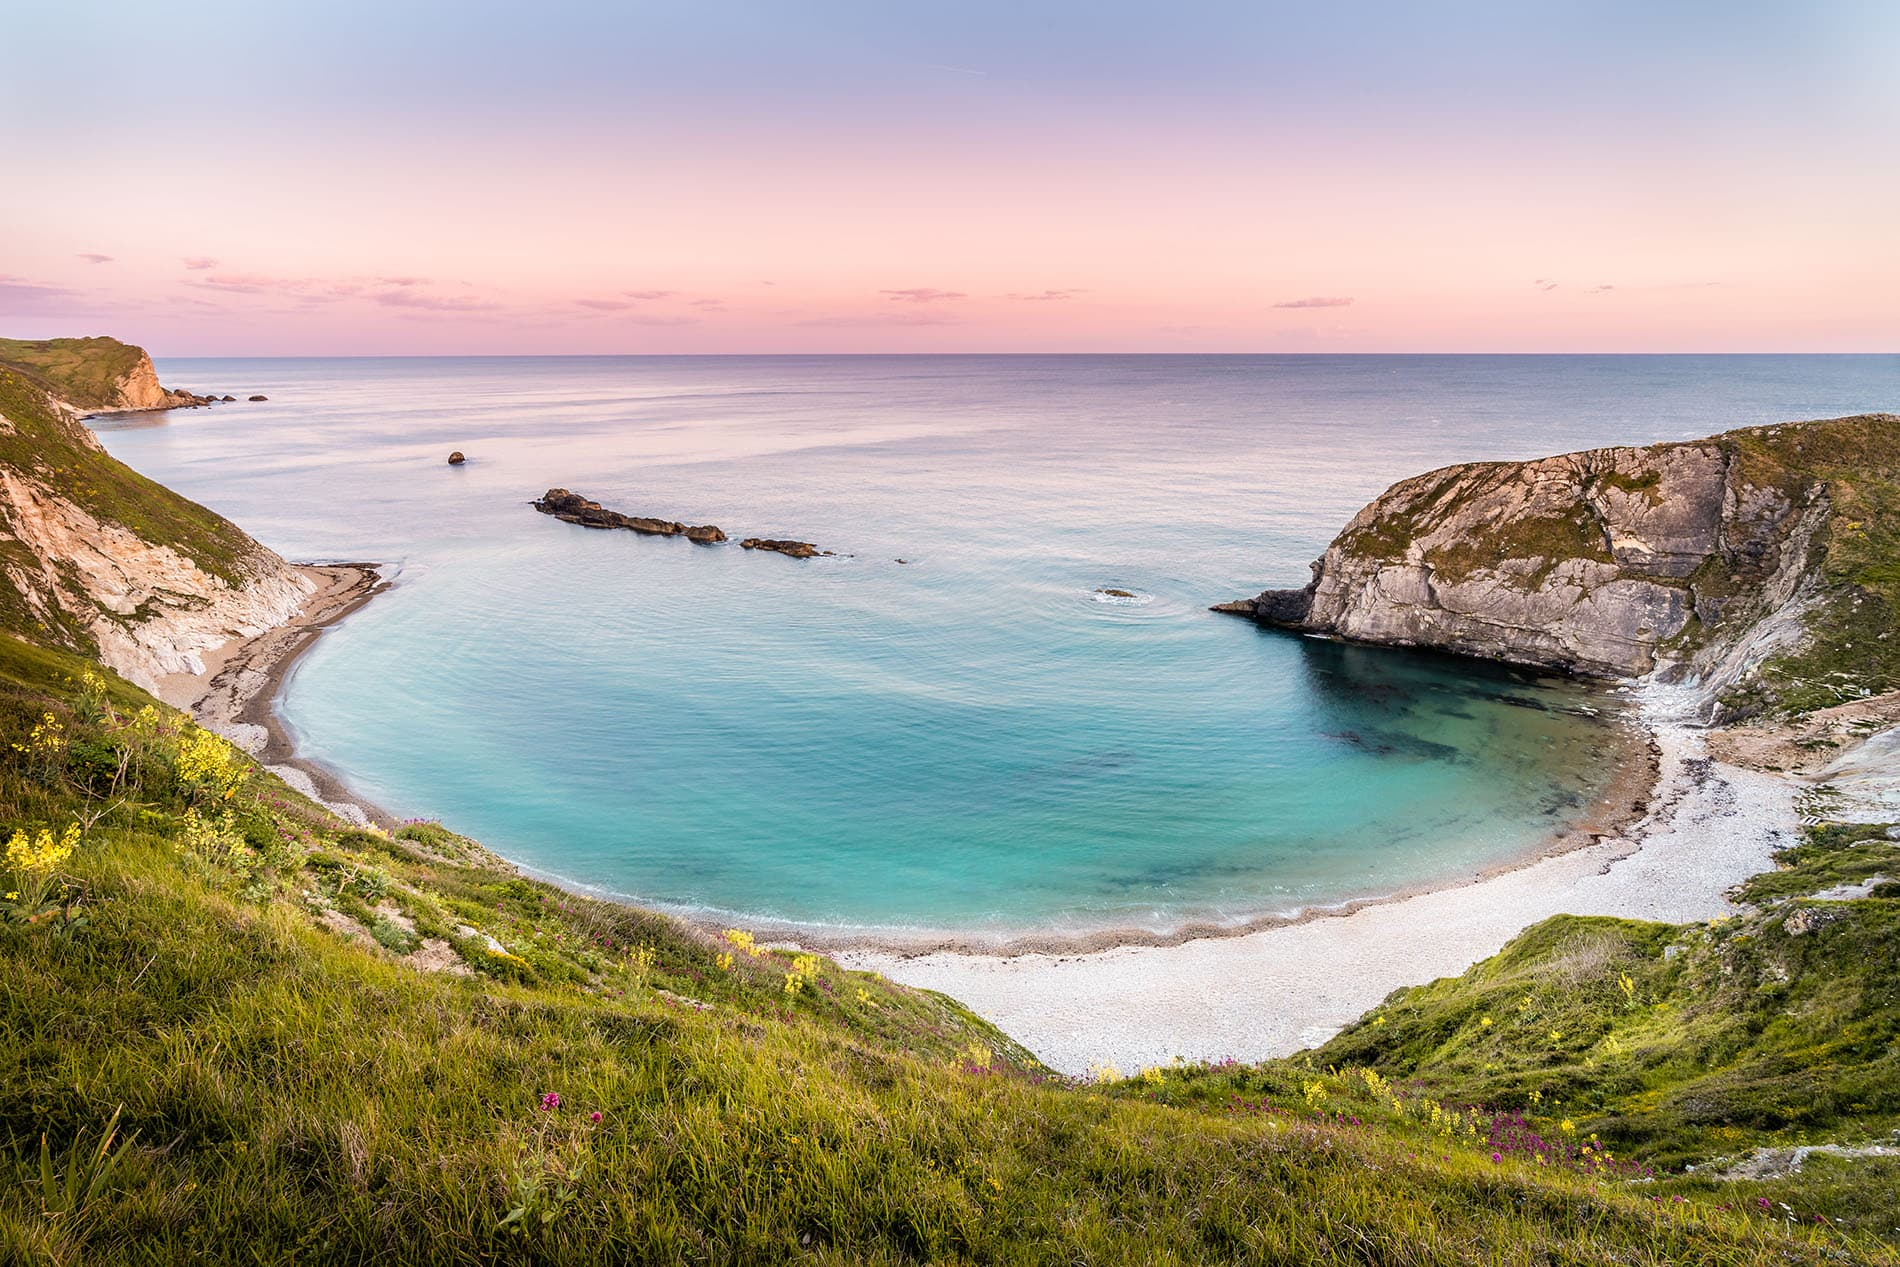 lulworth cove in dorset landscape photo at sunset